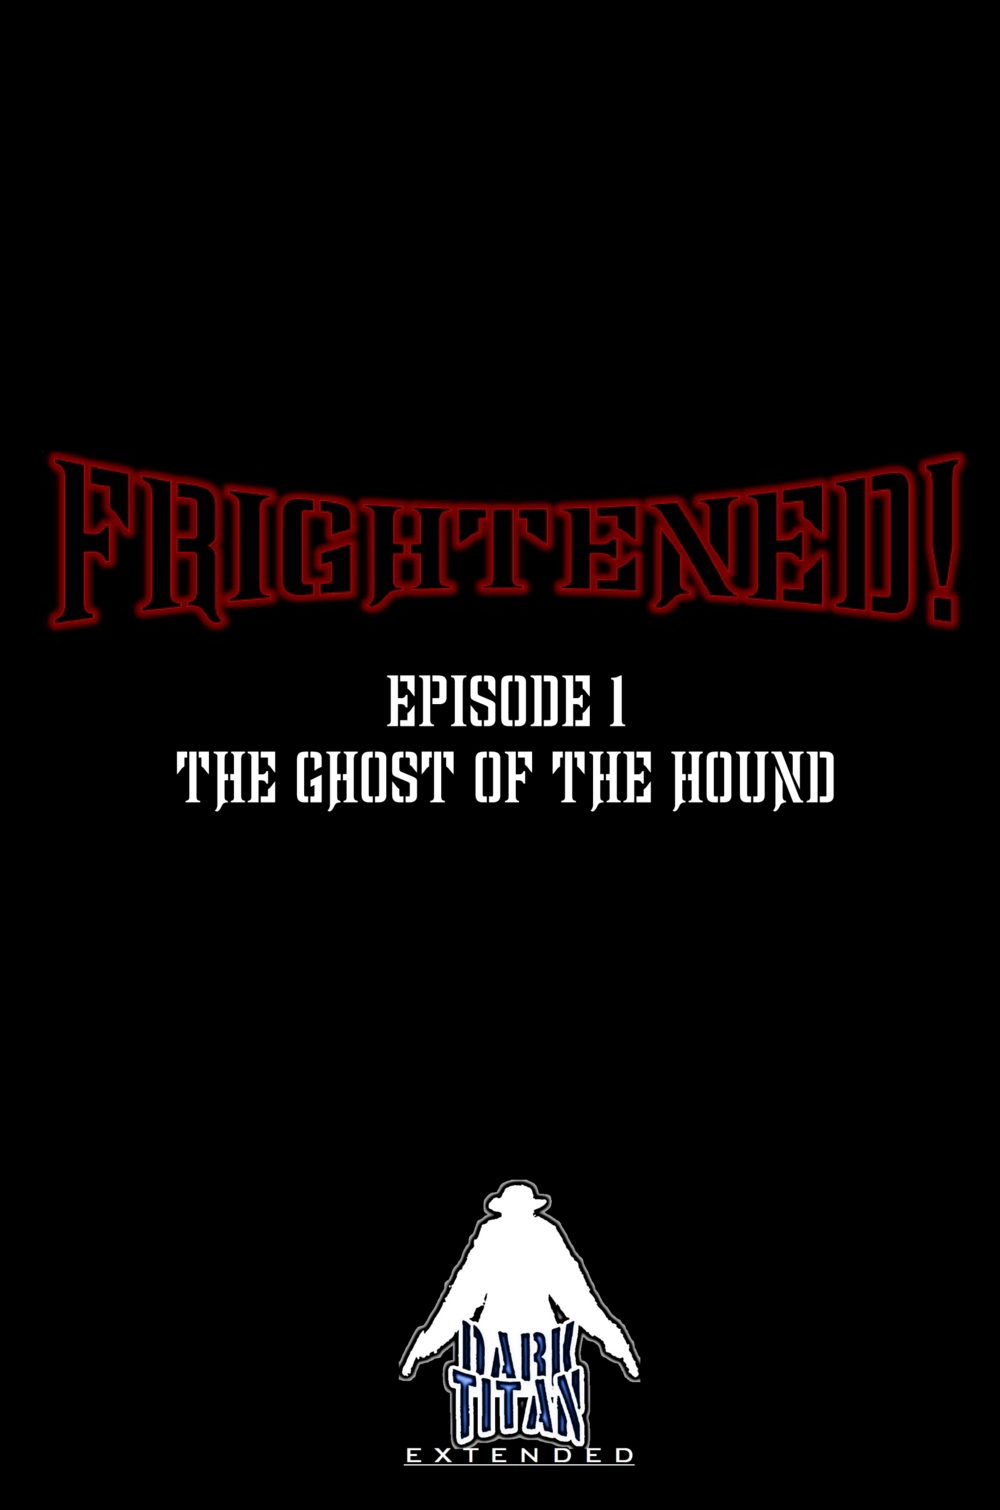 Frightened! - Ep. 101 Placeholder Cover.png